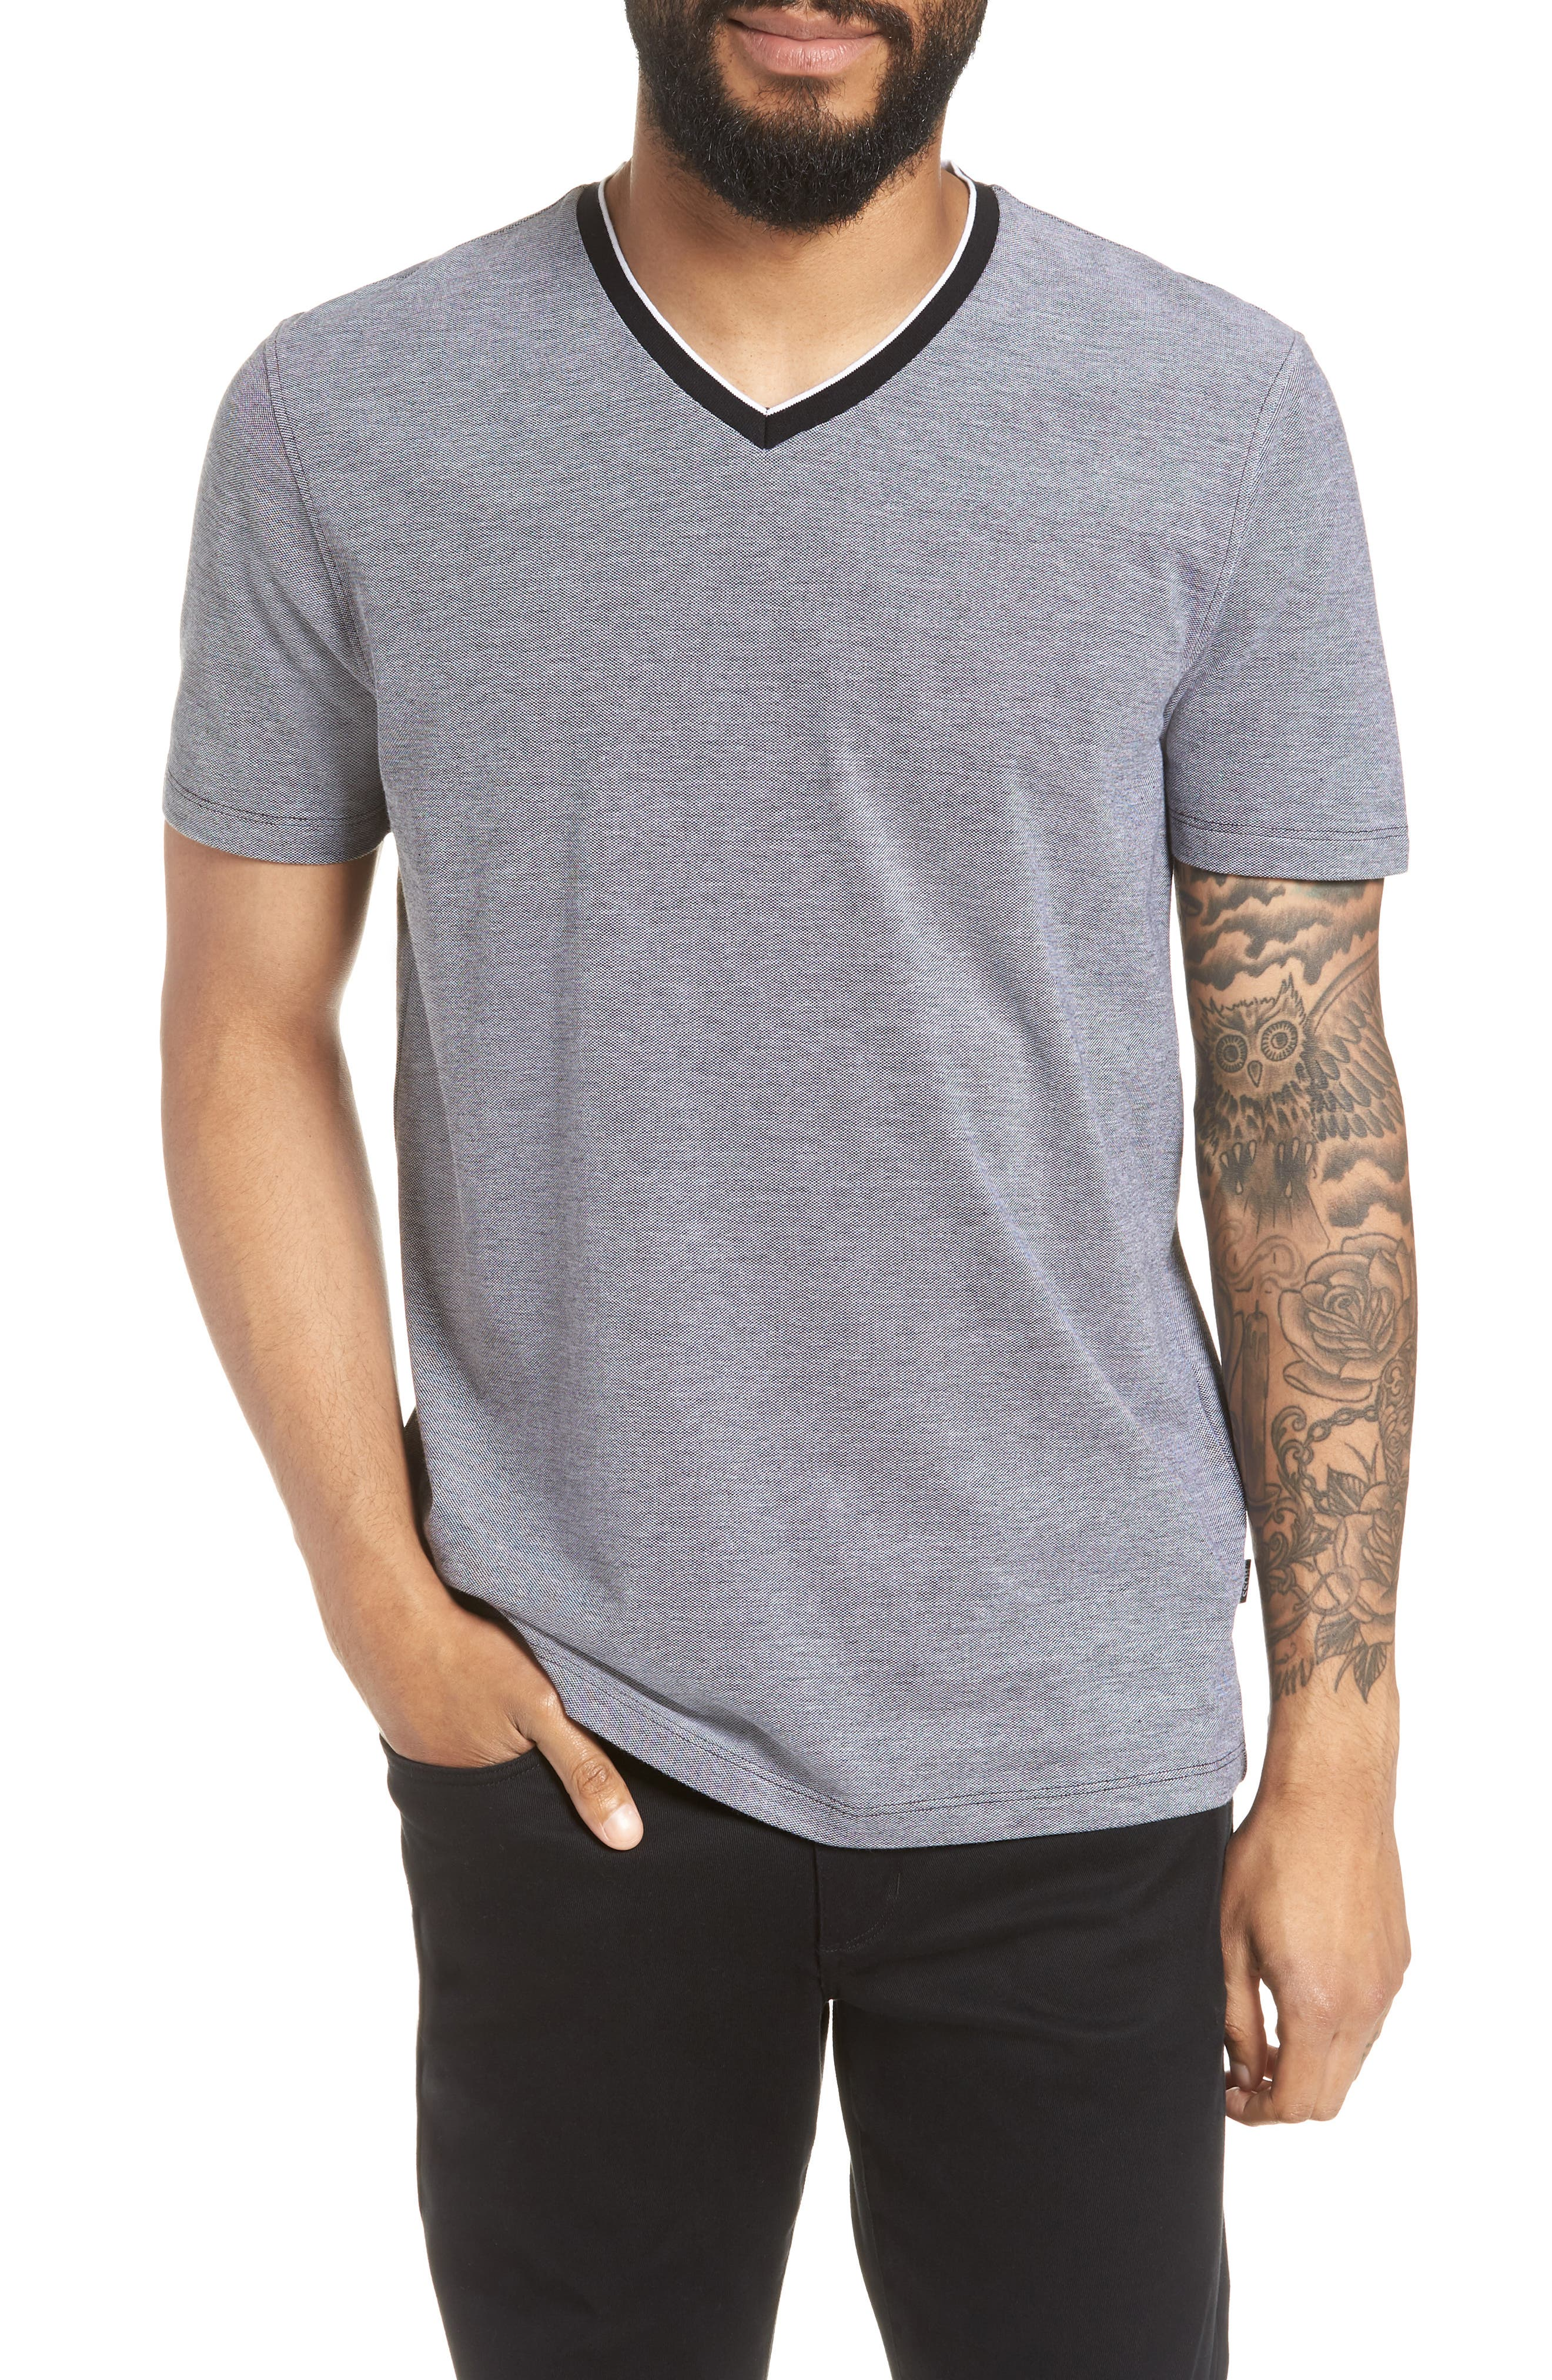 TIlson Regular Fit T-Shirt,                         Main,                         color, 001